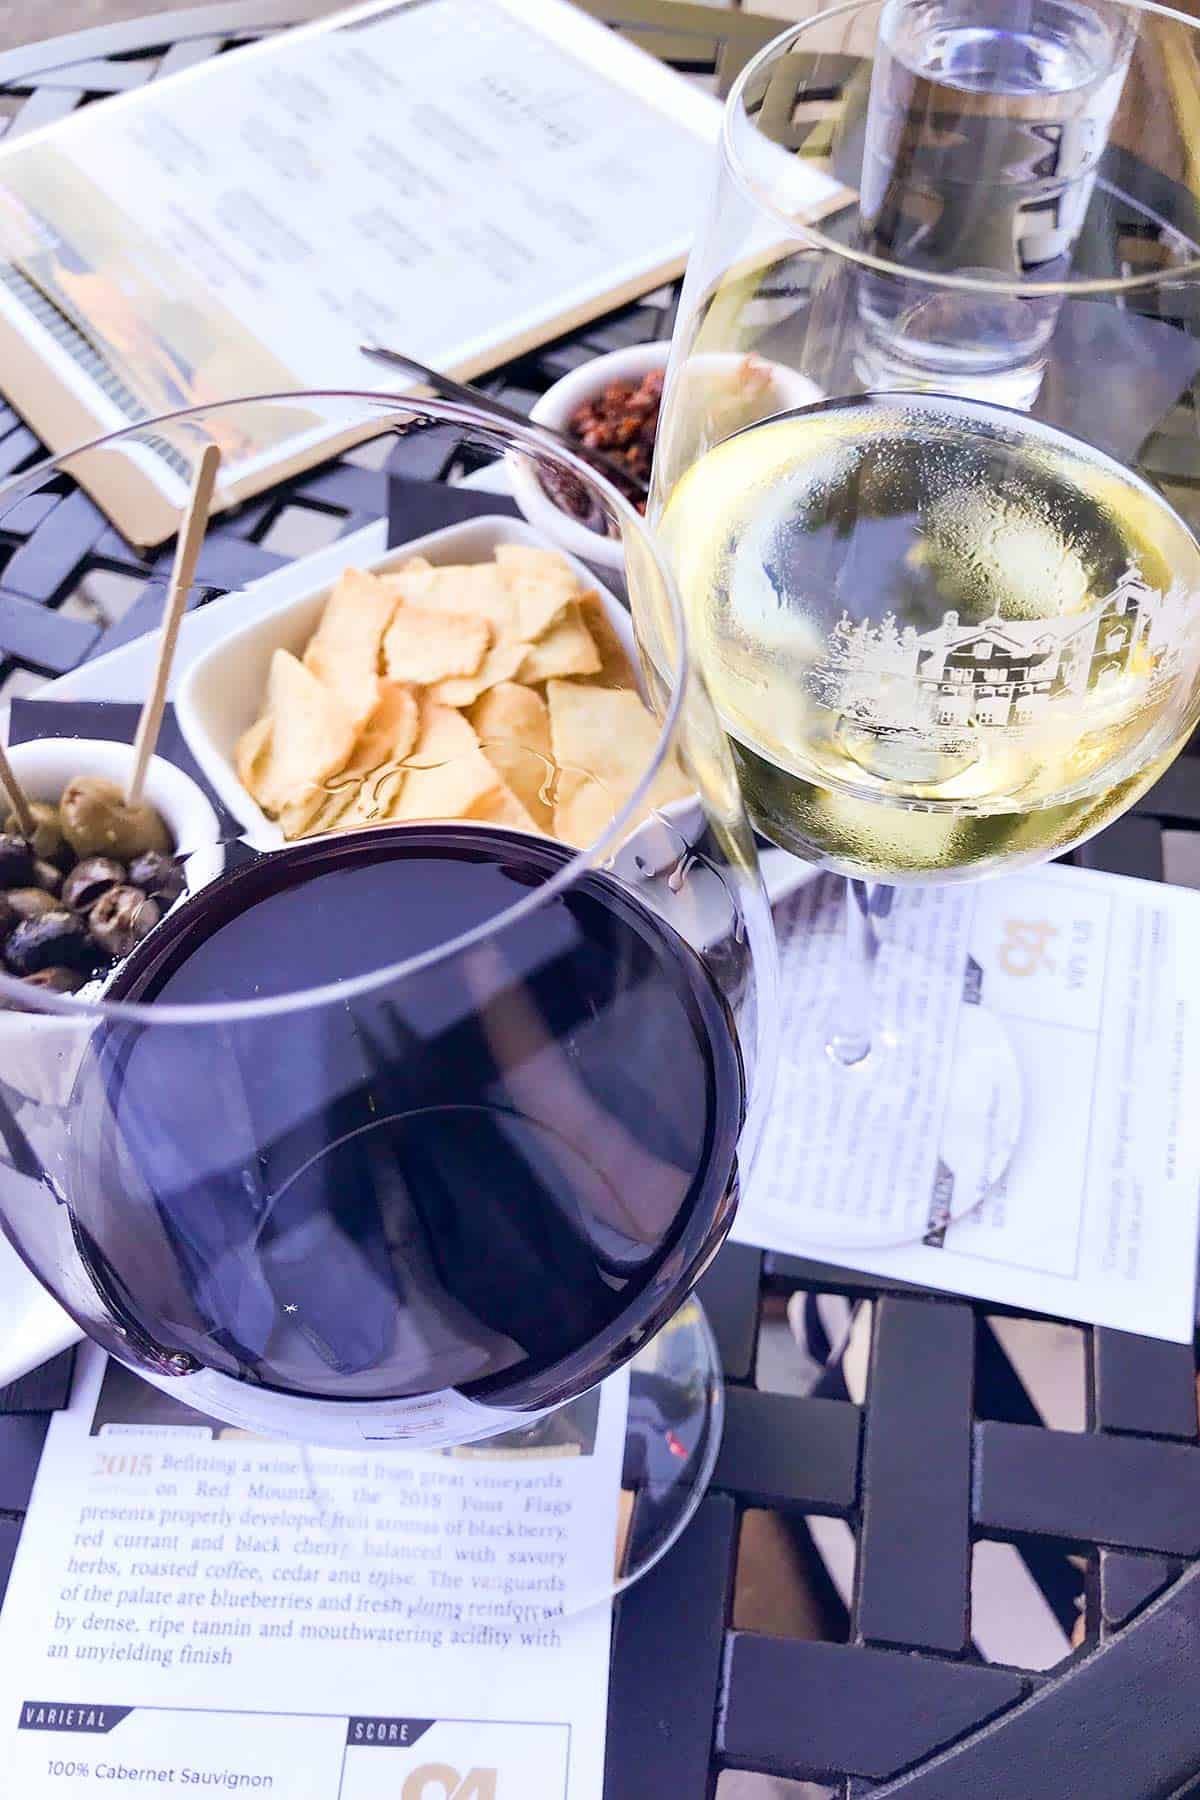 Things to Do in Kirkland, Washington: Patio Wine Tasting at DeLille